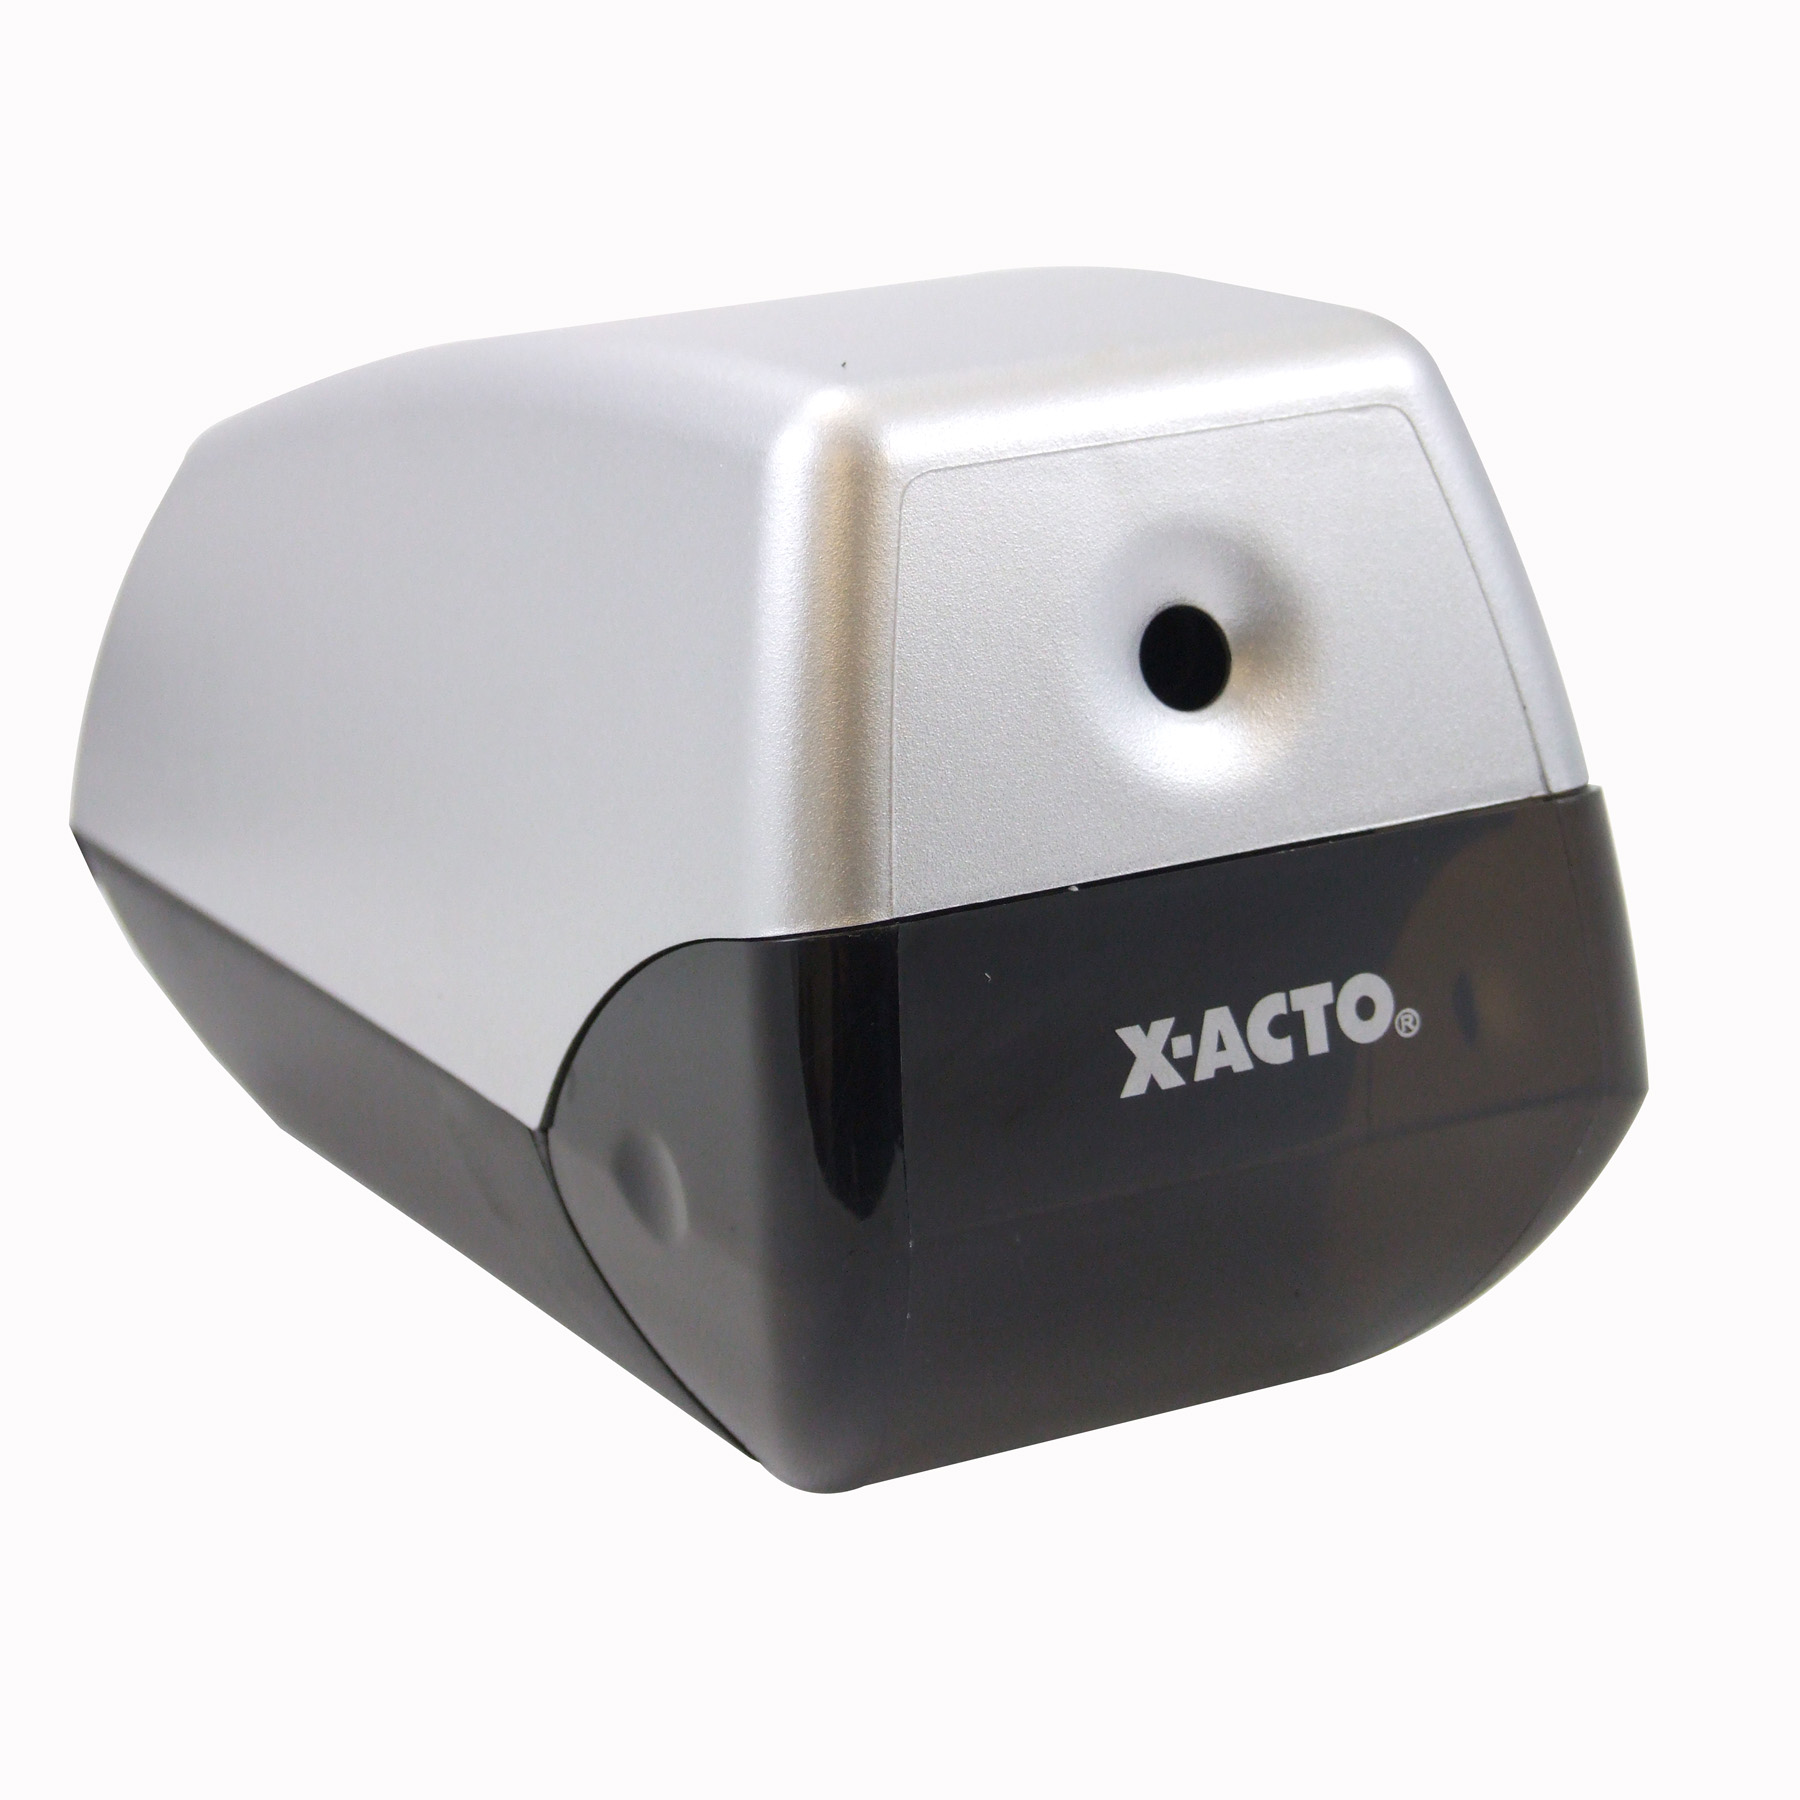 File:Helix Electric Pencil Sharpener.JPG - Wikimedia Commons X Acto Electric Pencil Sharpener